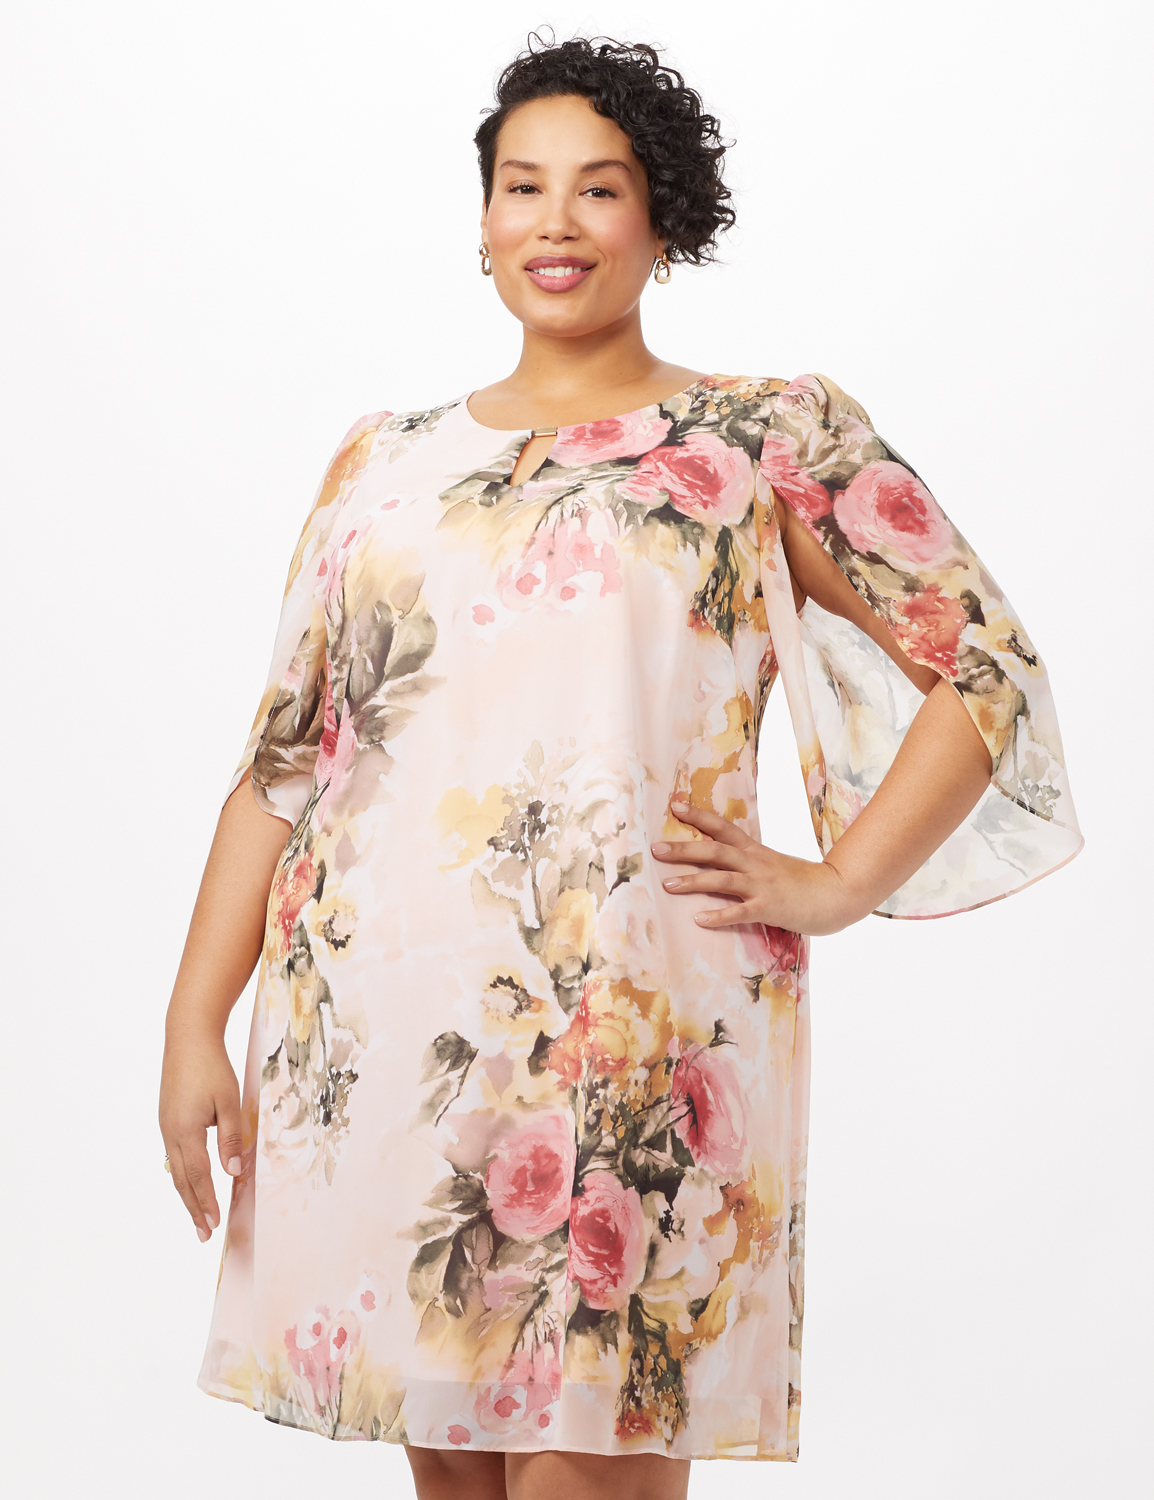 Floral Chiffon Dress with Keyhole Neckline -Rose - Front